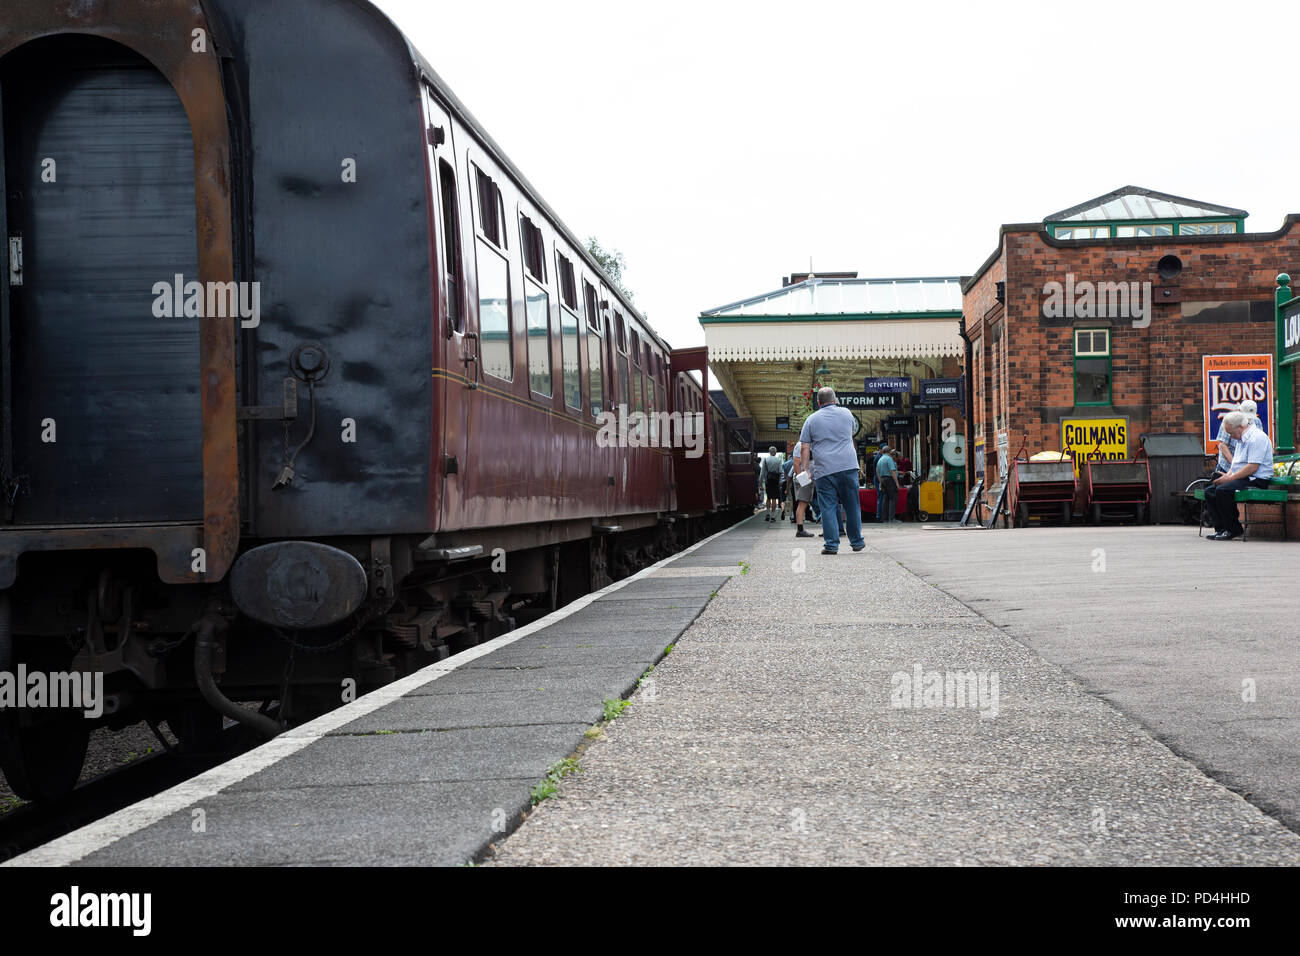 Worms eye view of Platform Number 1 with a steam train ready to depart at Loughborough station, Great Central Railway heritage line - Stock Image